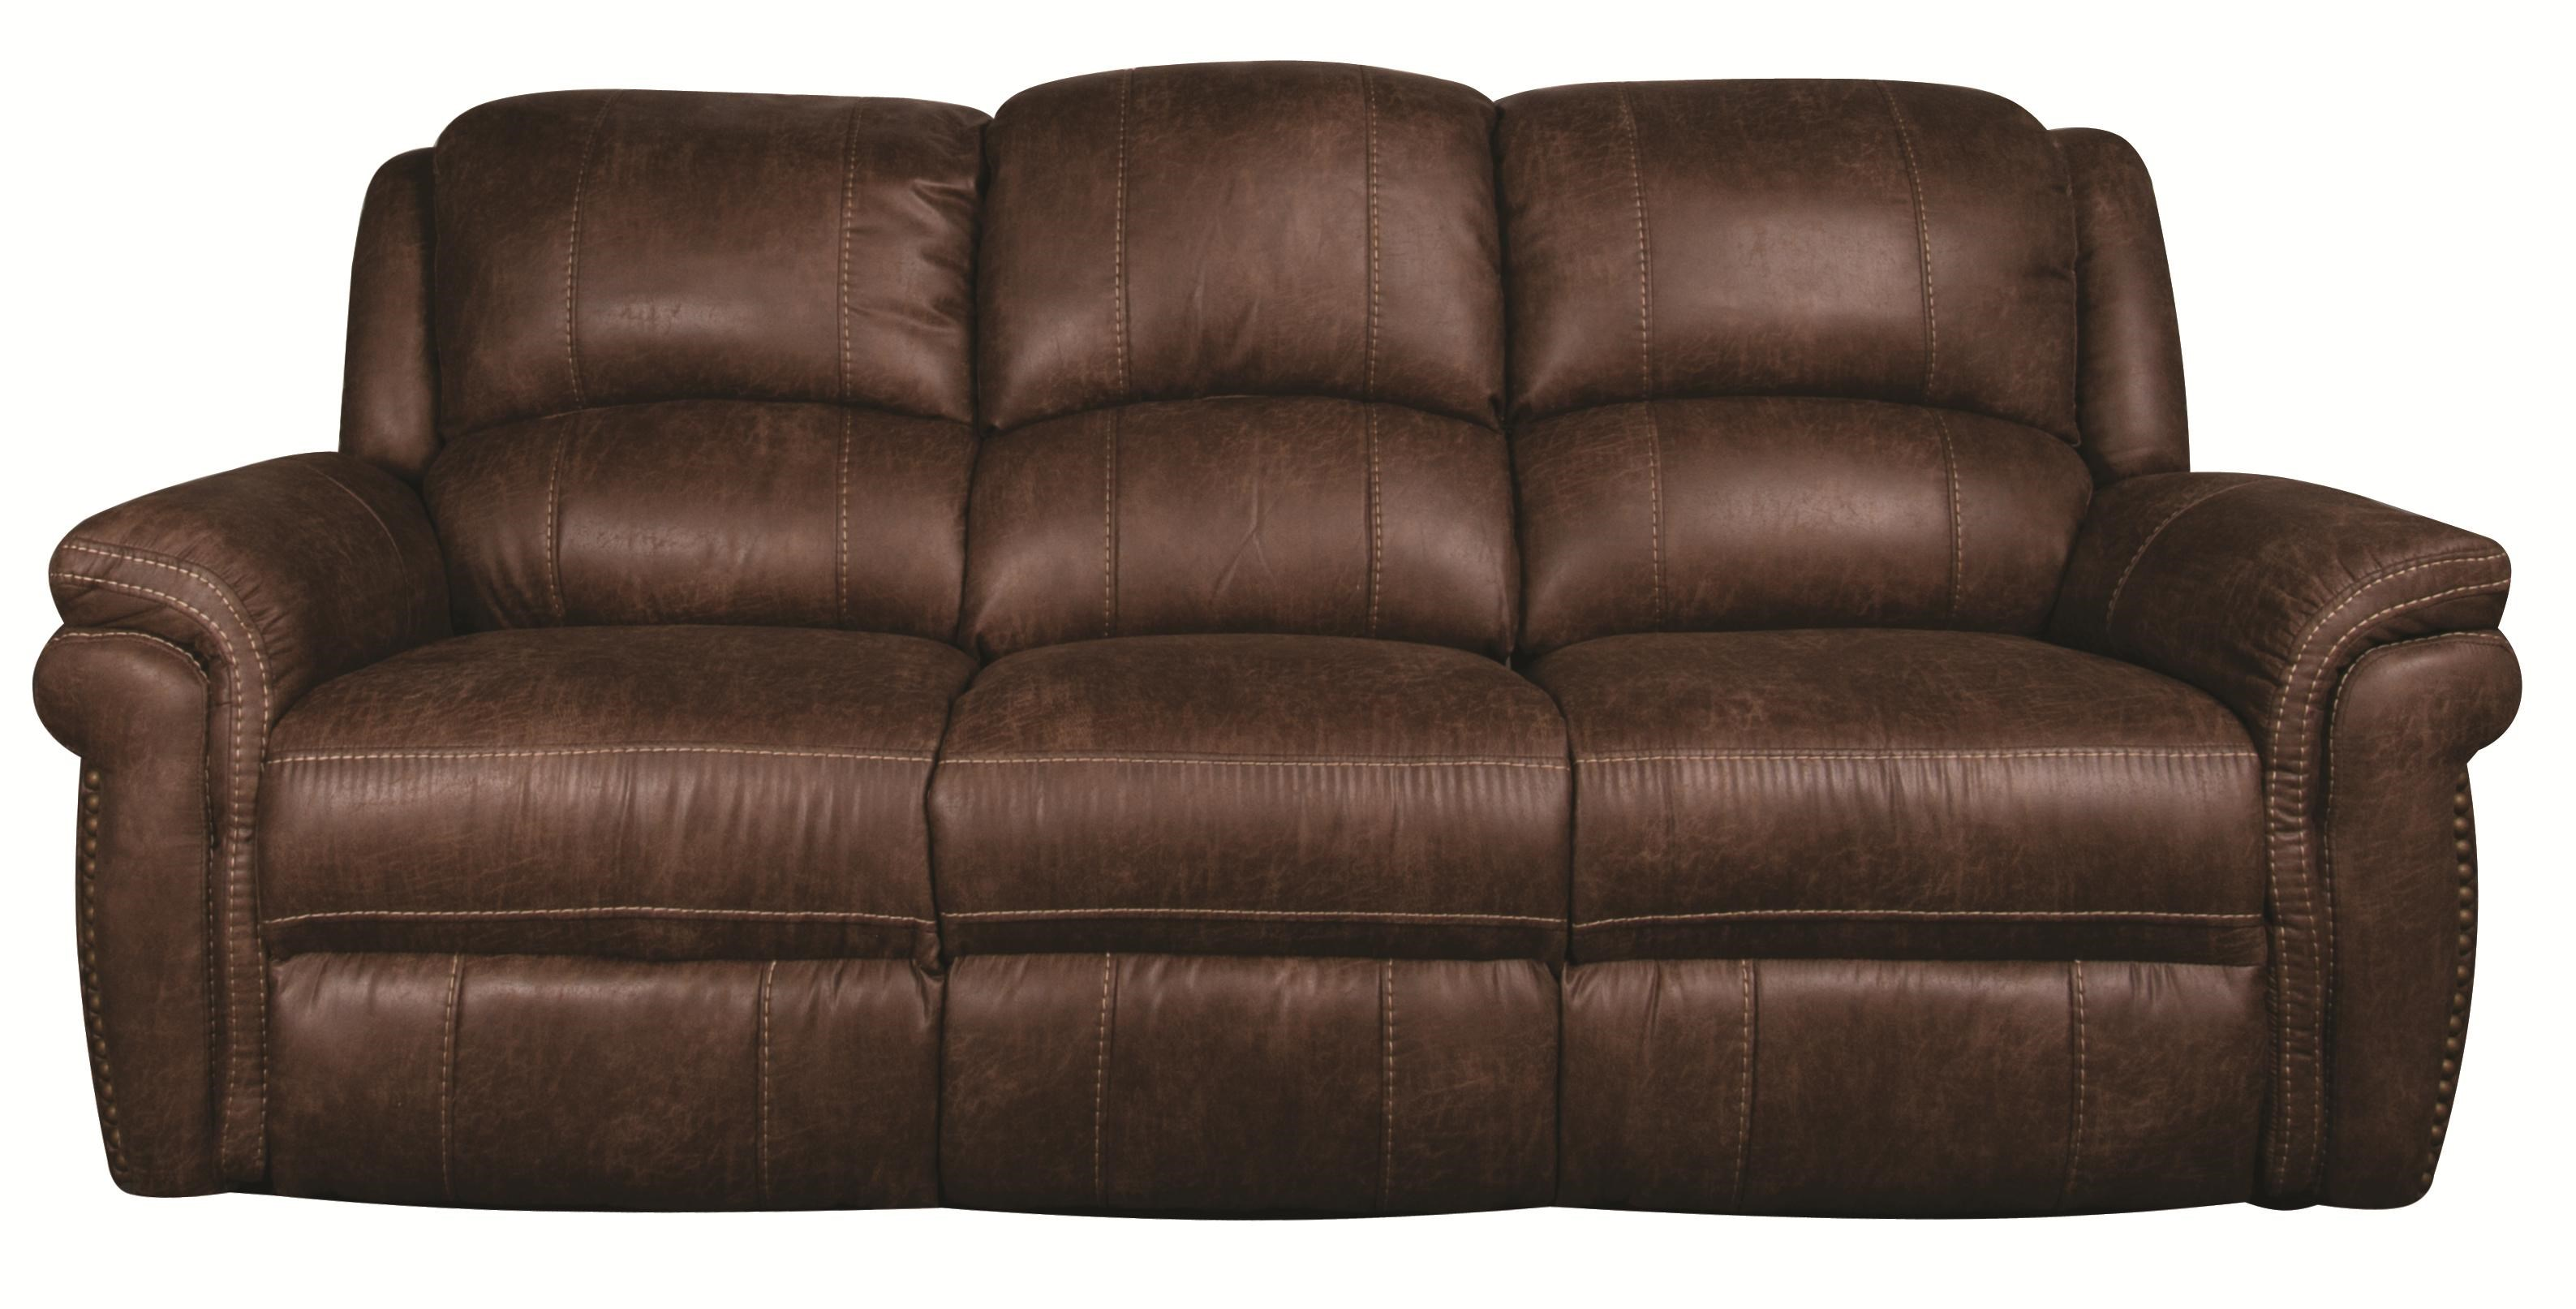 Ordinaire Morris Home BeauBeau Power Reclining Sofa ...